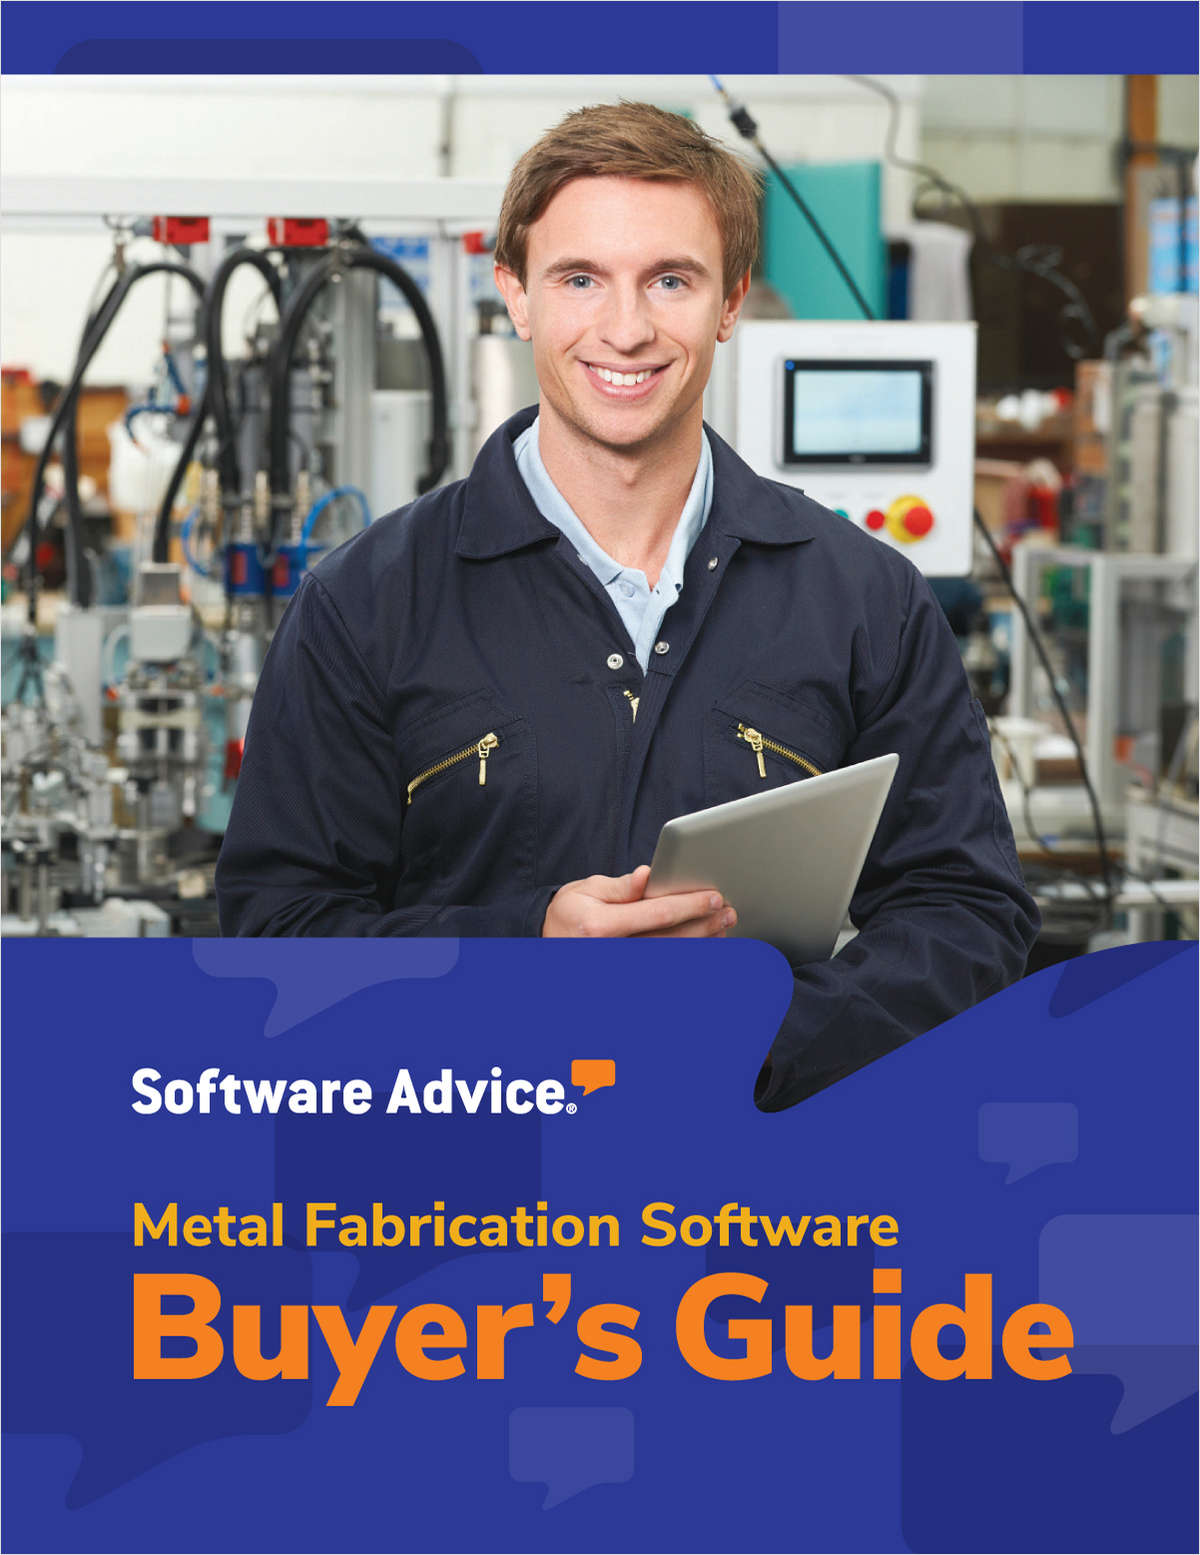 Software Advice's Guide to Buying Metal Fabrication Software in 2019